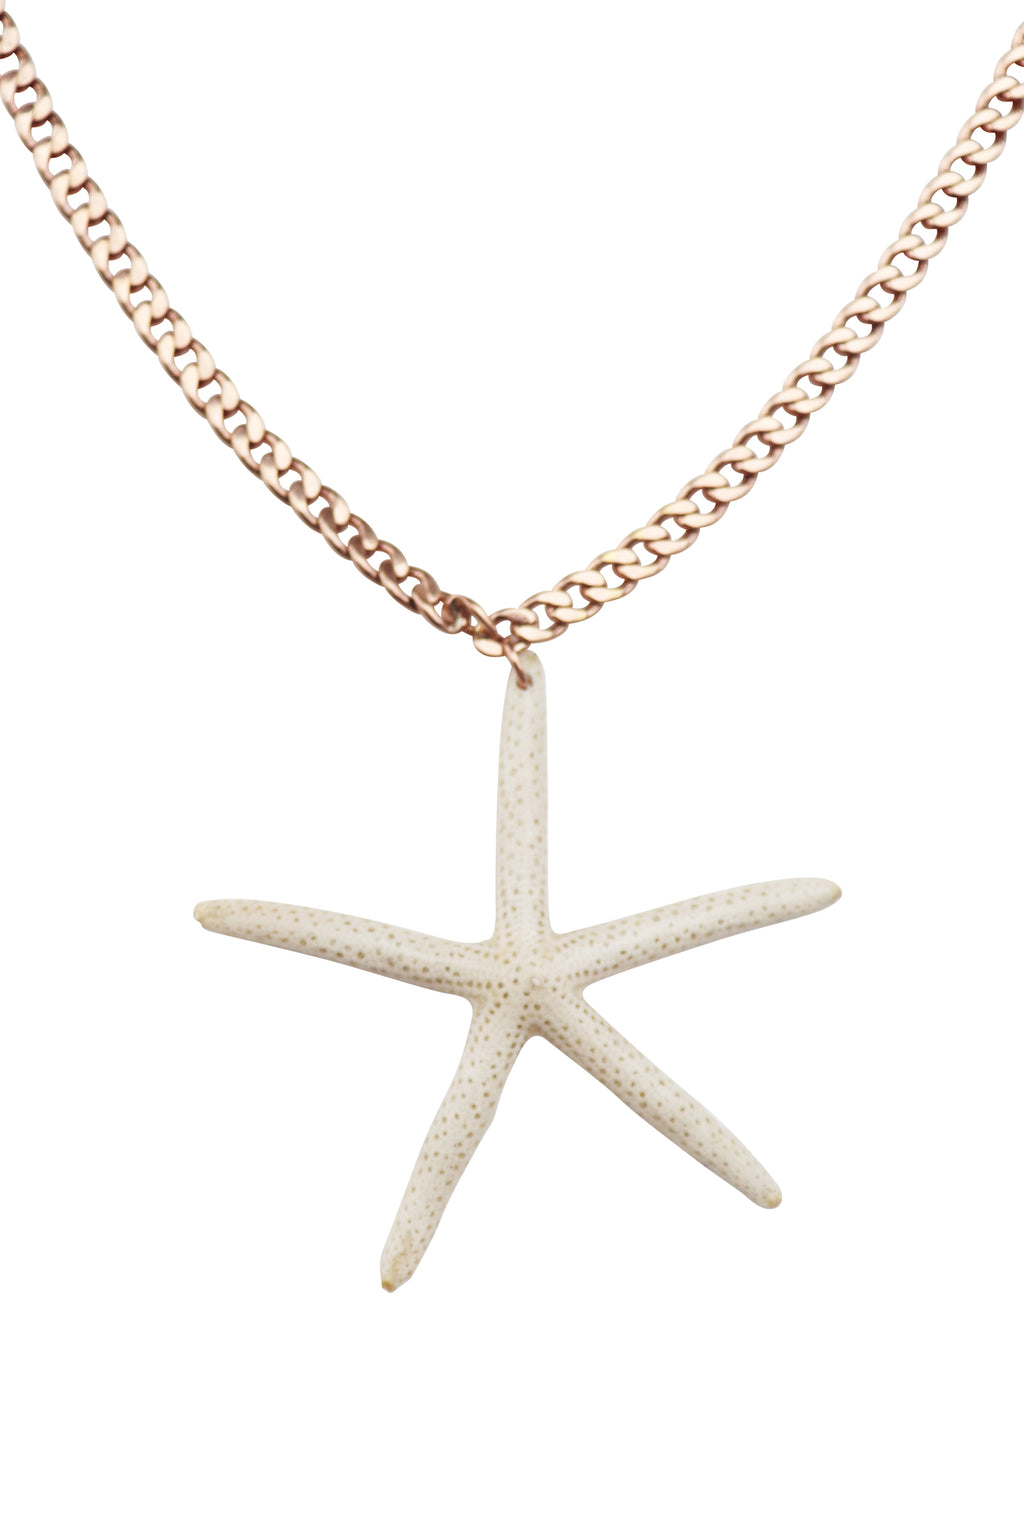 Starfish Rocker Necklace